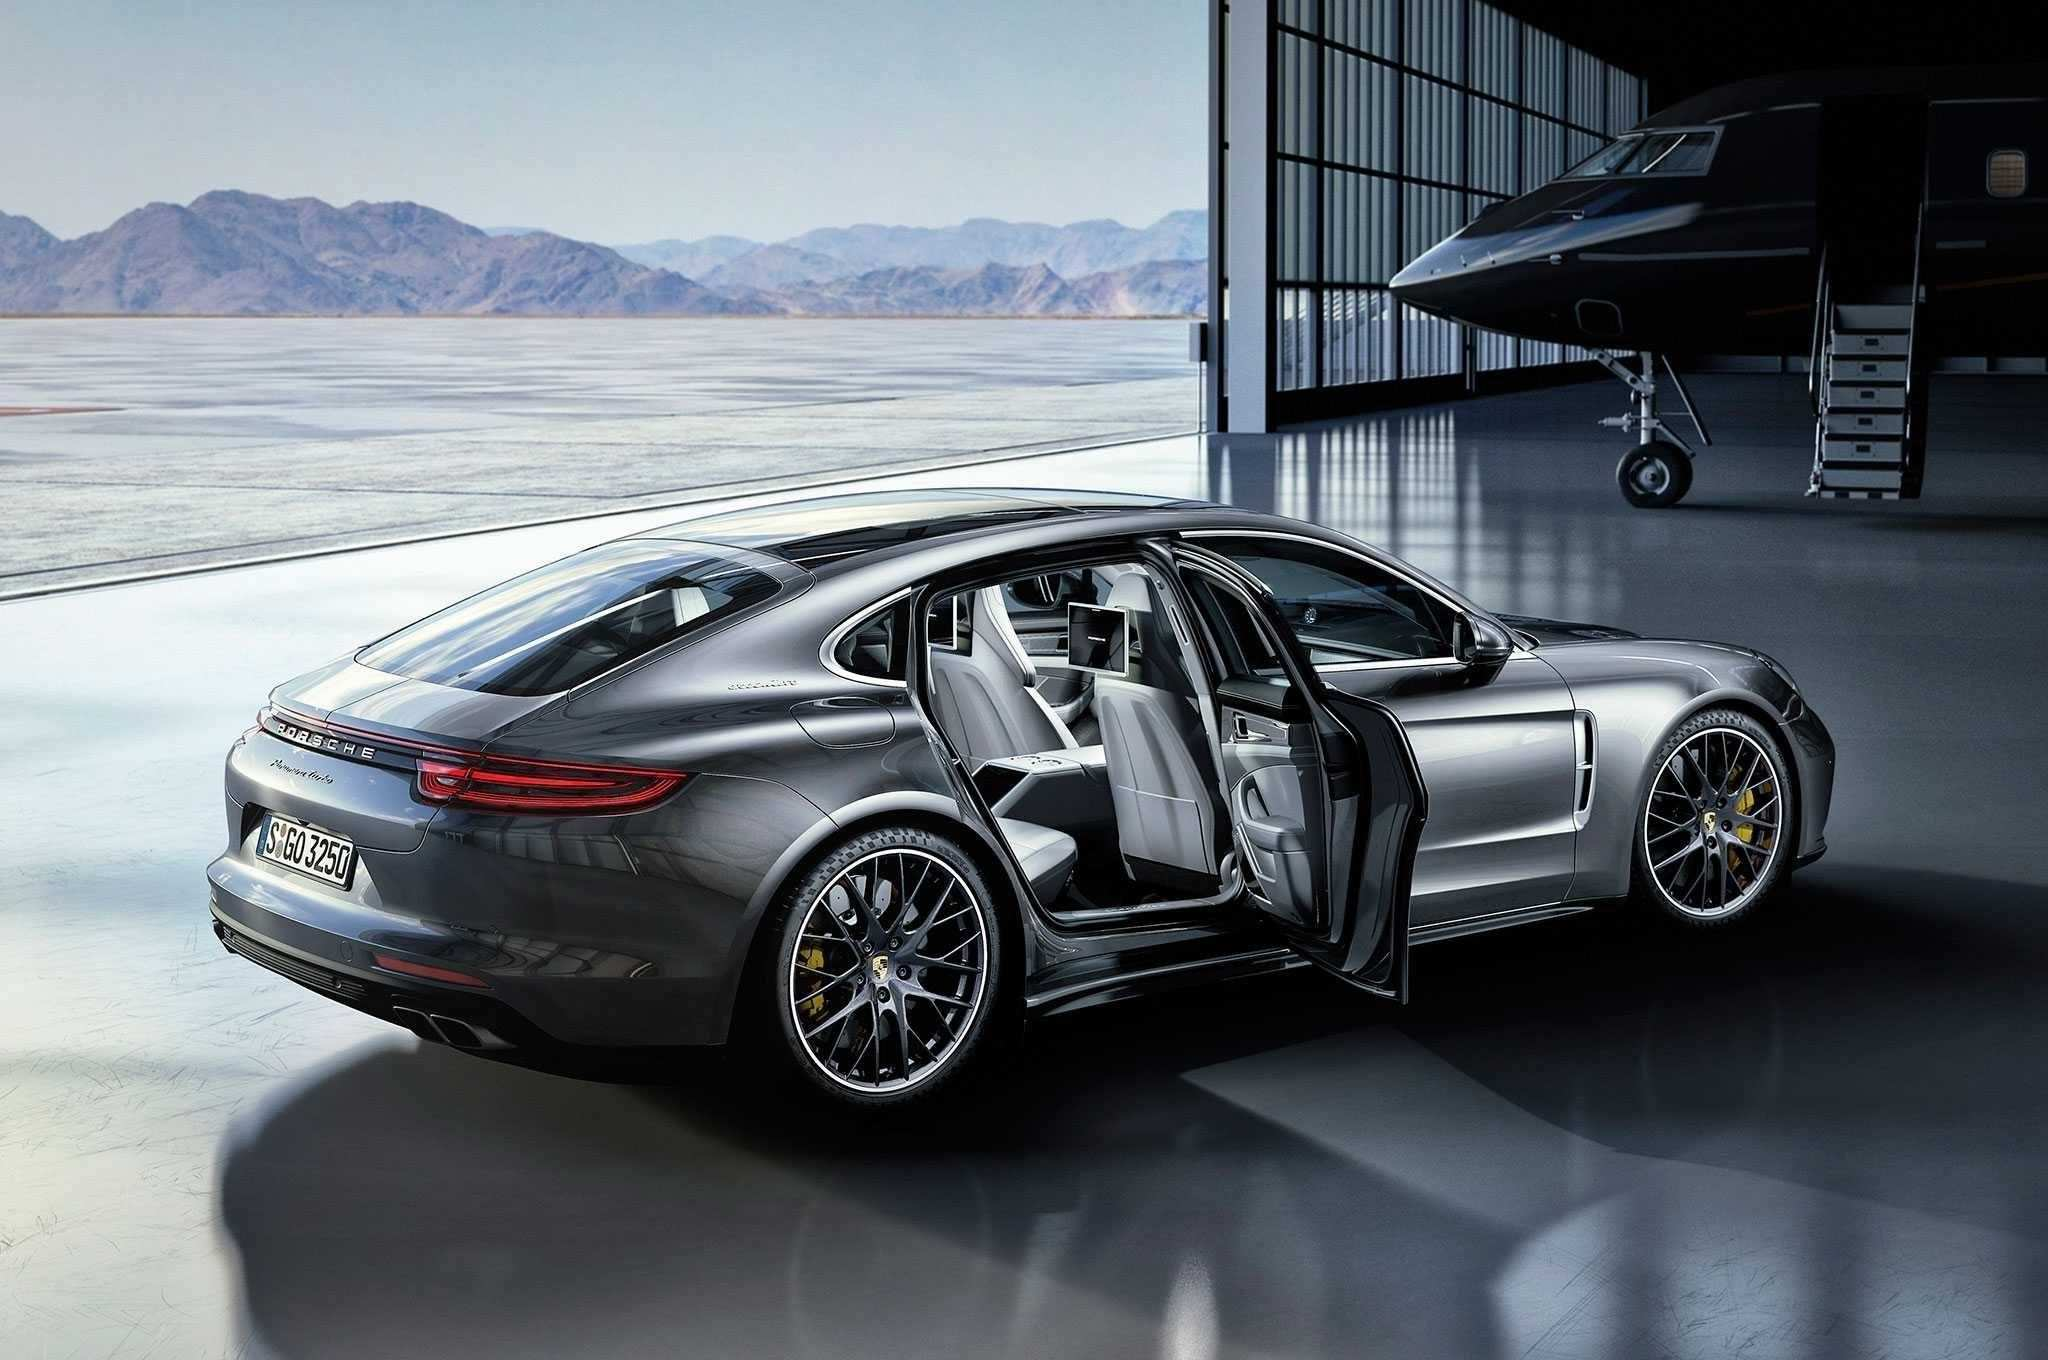 81 New 2019 Porsche Panamera Turbo Specs and Review by 2019 Porsche Panamera Turbo